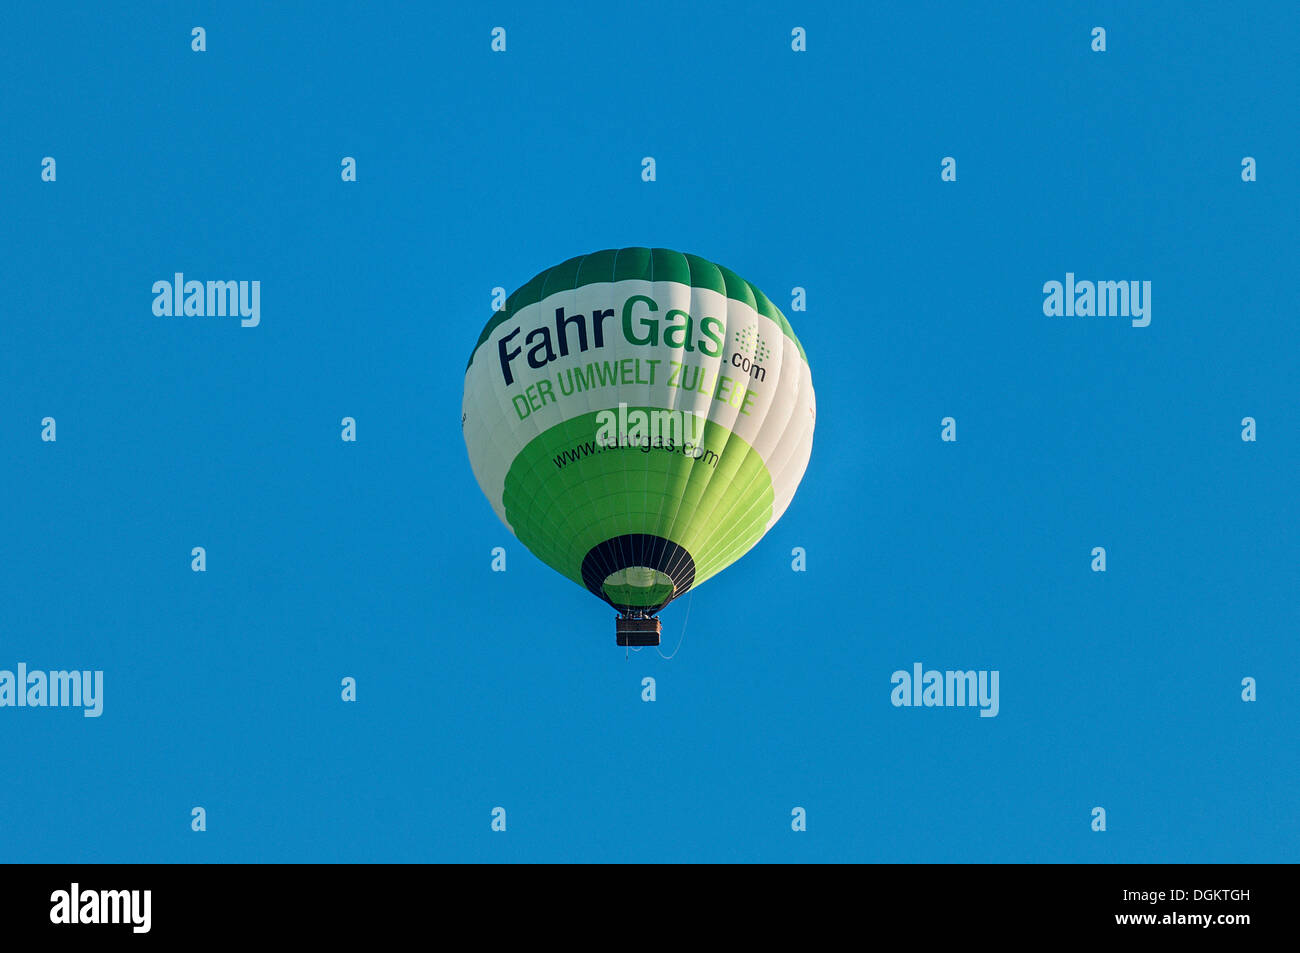 Hot Air Balloon, lettrage Fahrgas.com, une initiative visant à modifier les voitures de fonctionner au GPL, Gaz de Pétrole Liquéfié Photo Stock